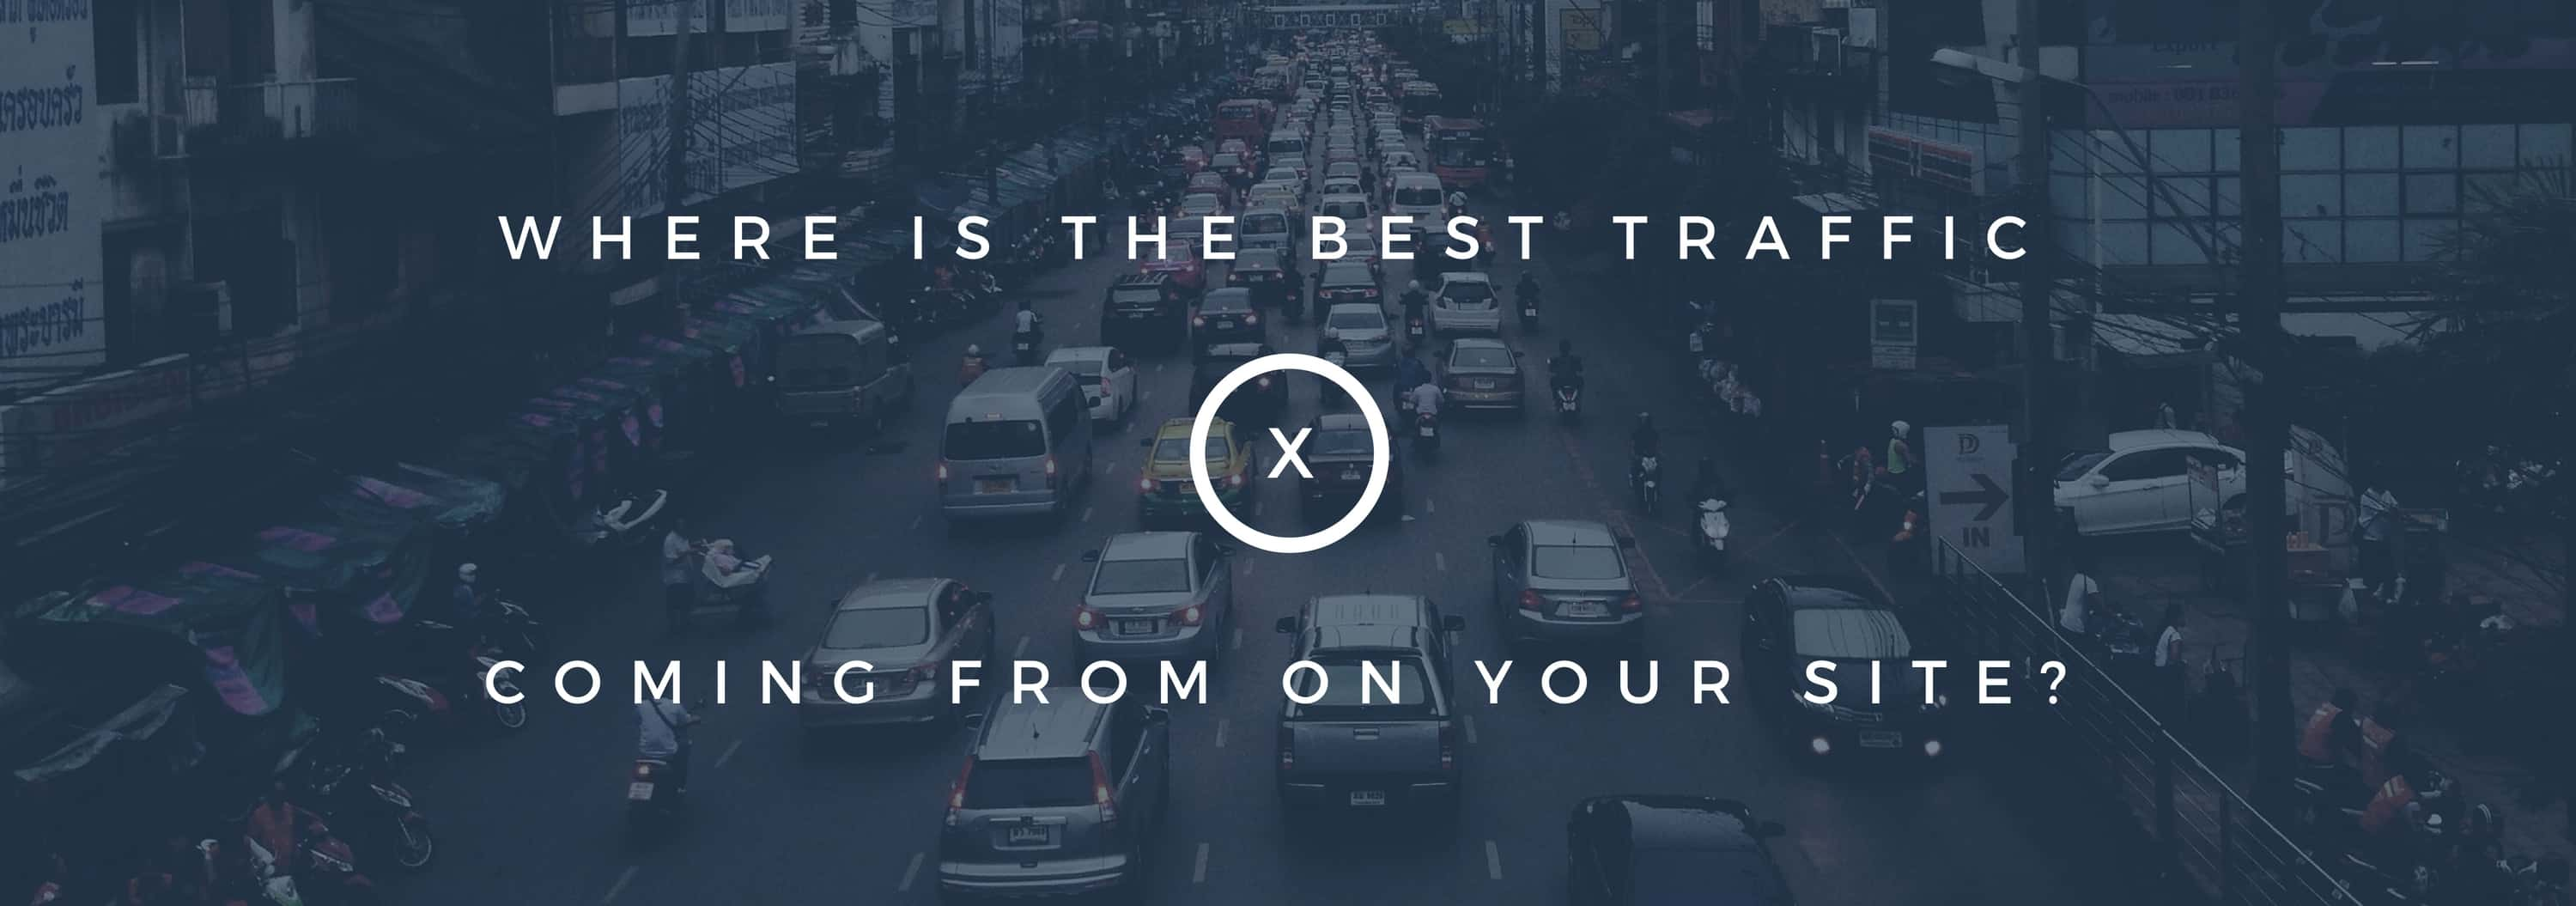 web traffic that delivers the most value per visitor